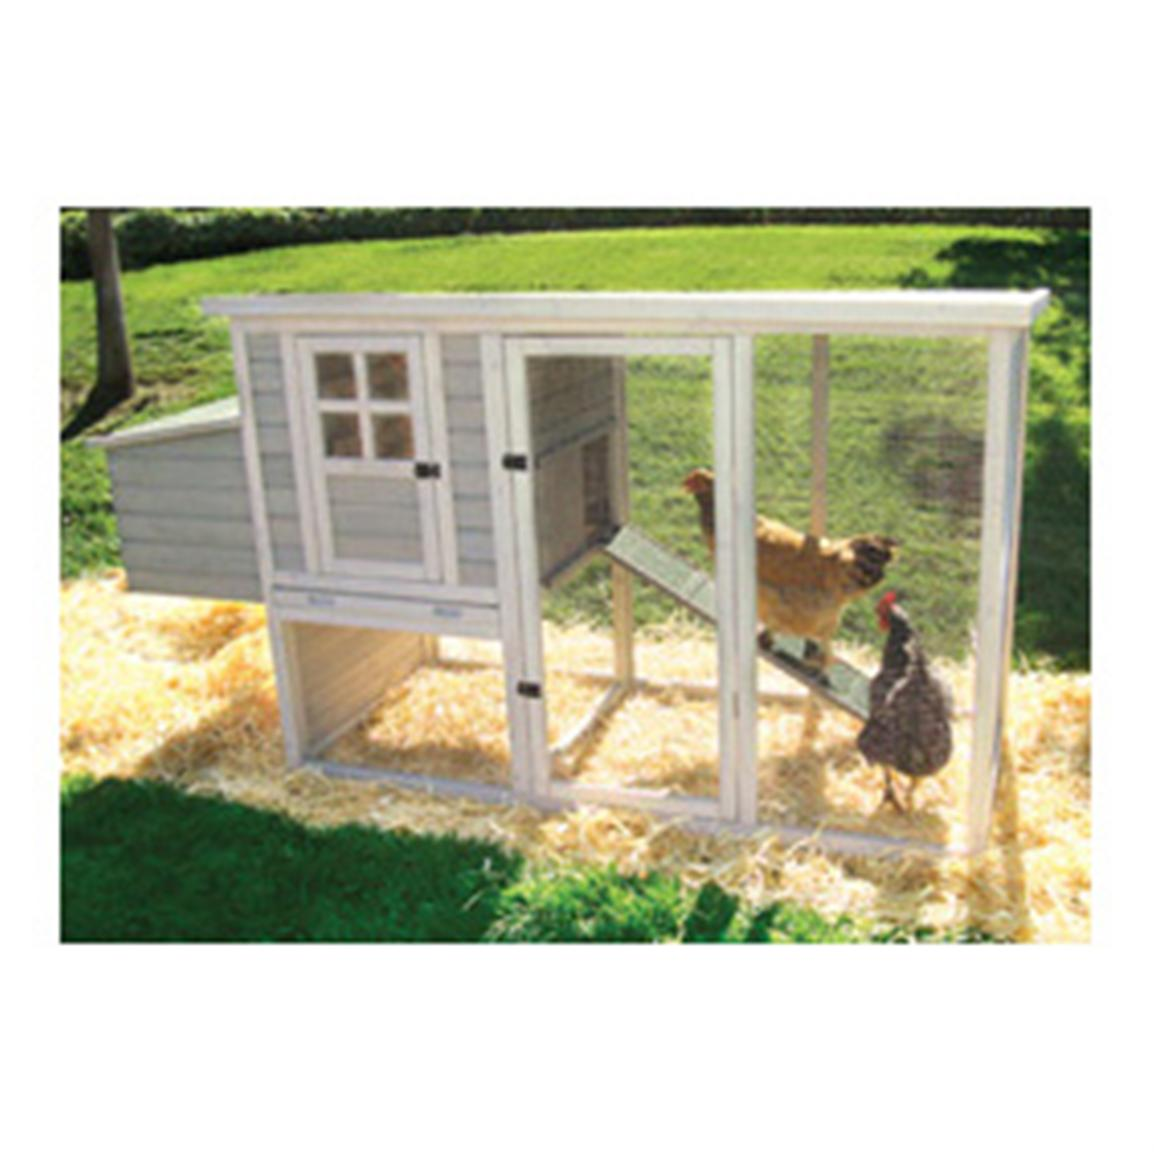 precision pet products hen house chicken coop - Precision Pet Products